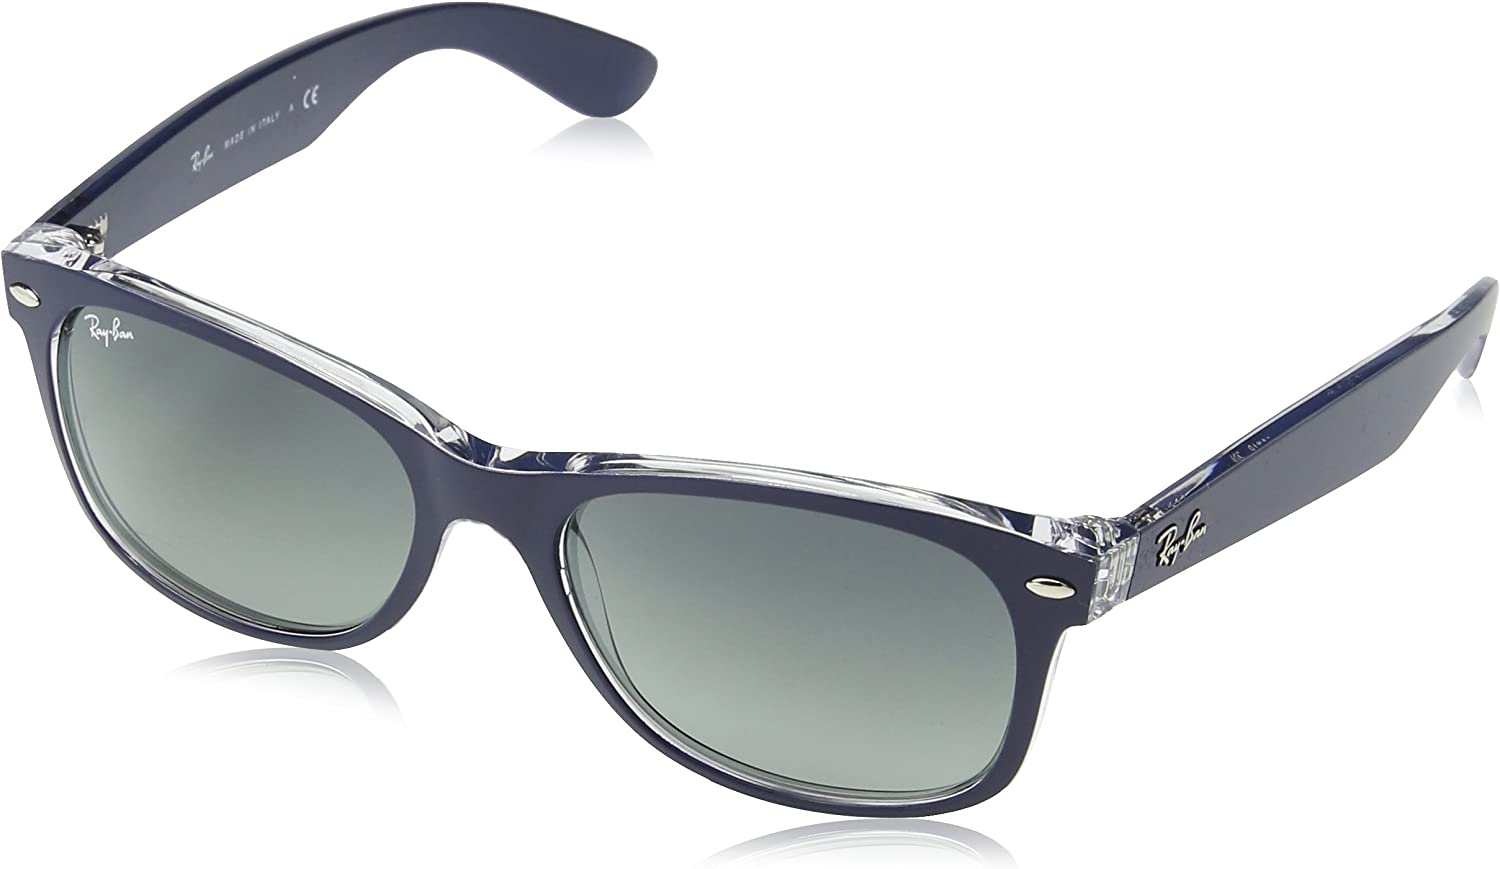 Ray-Ban New Wayfarer, Gafas de Sol Unisex  adulto, Multicolor (Blue and Transparent 605371), 55 mm